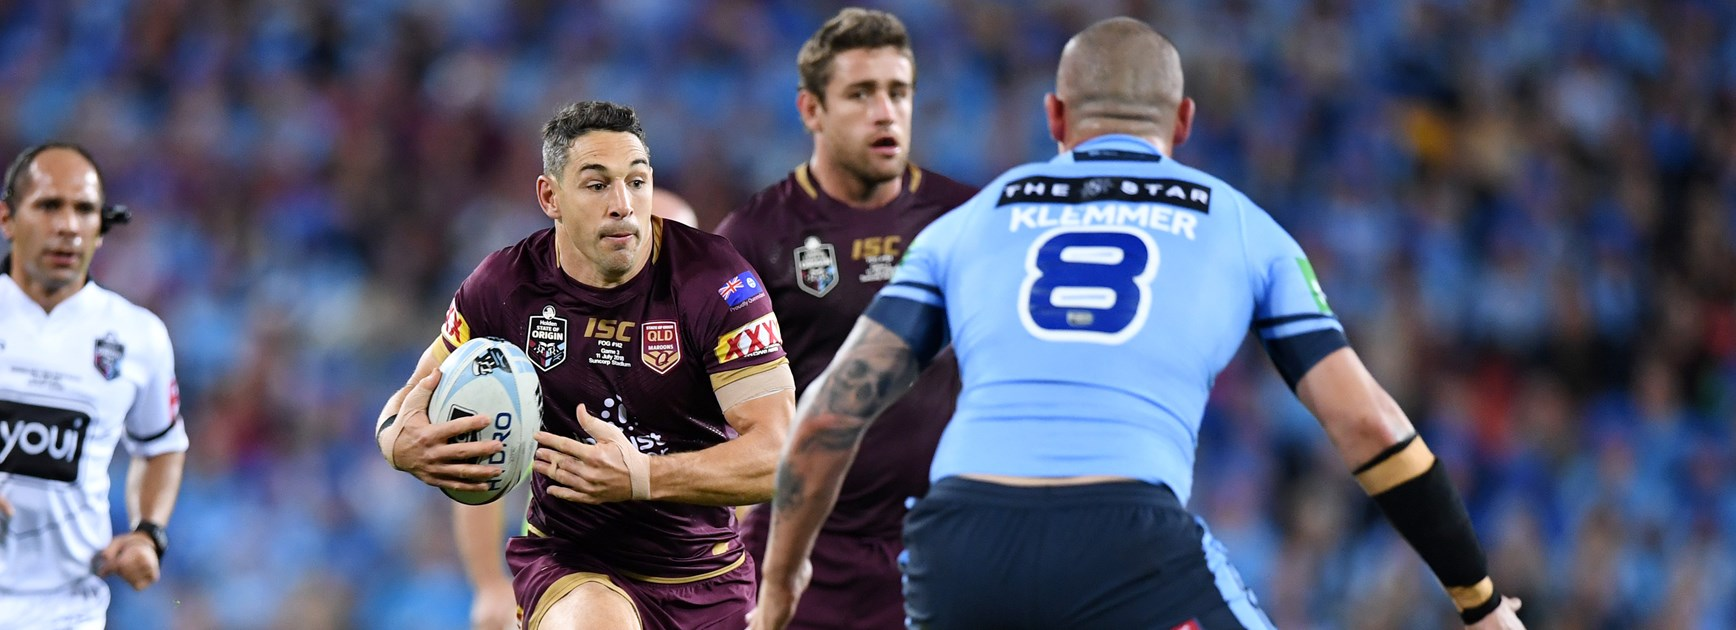 Queensland fullback Billy Slater.